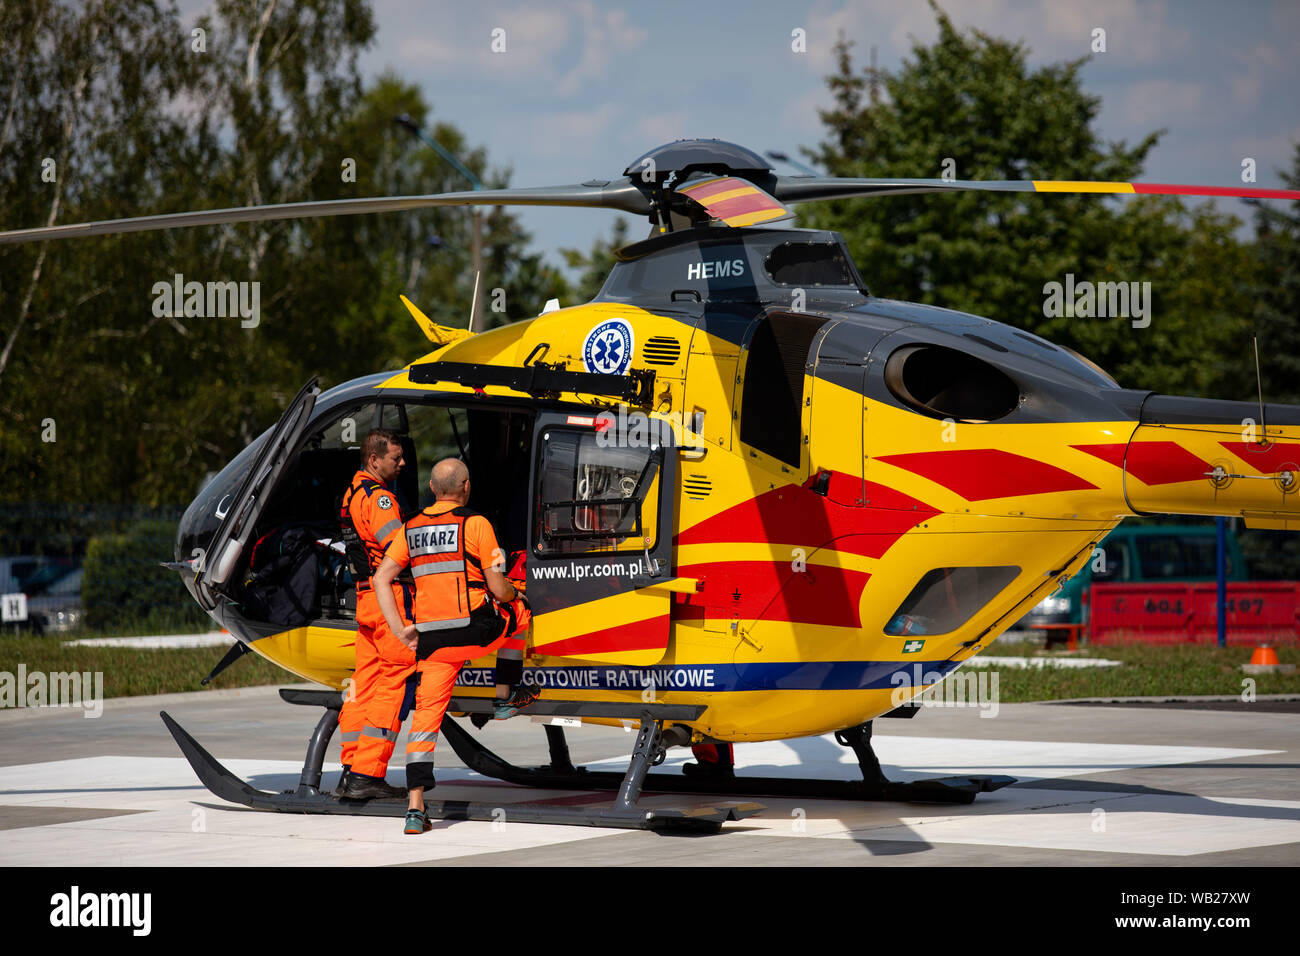 Poland, Czestochowa - 06 August 2019: Air Ambulance (LPR) in action at the airstrip.  Helicopter ec-135 and  air ambulance in rescue. Stock Photo